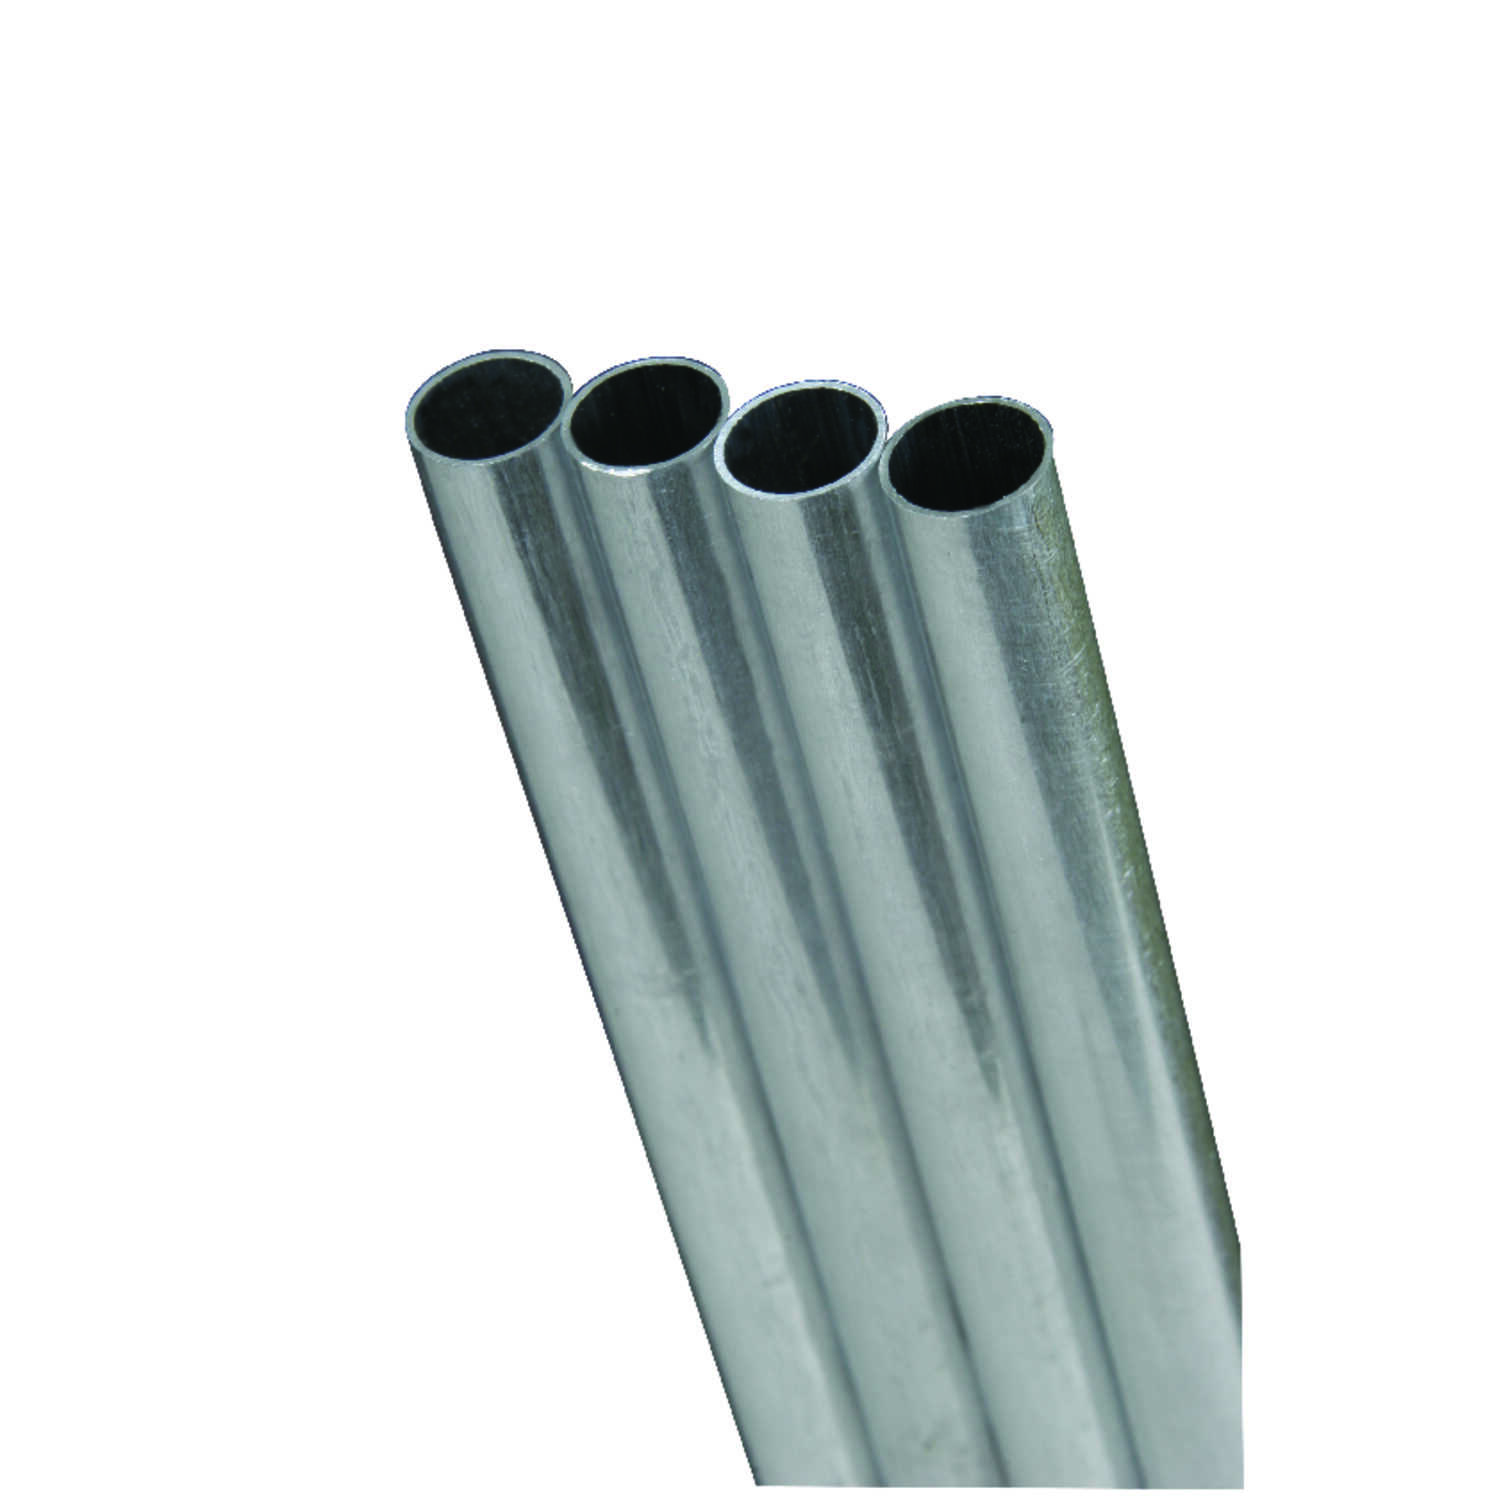 K&S 3 8 in Dia x 12 in H x 1 ft L Stainless Steel Tube 2 pk